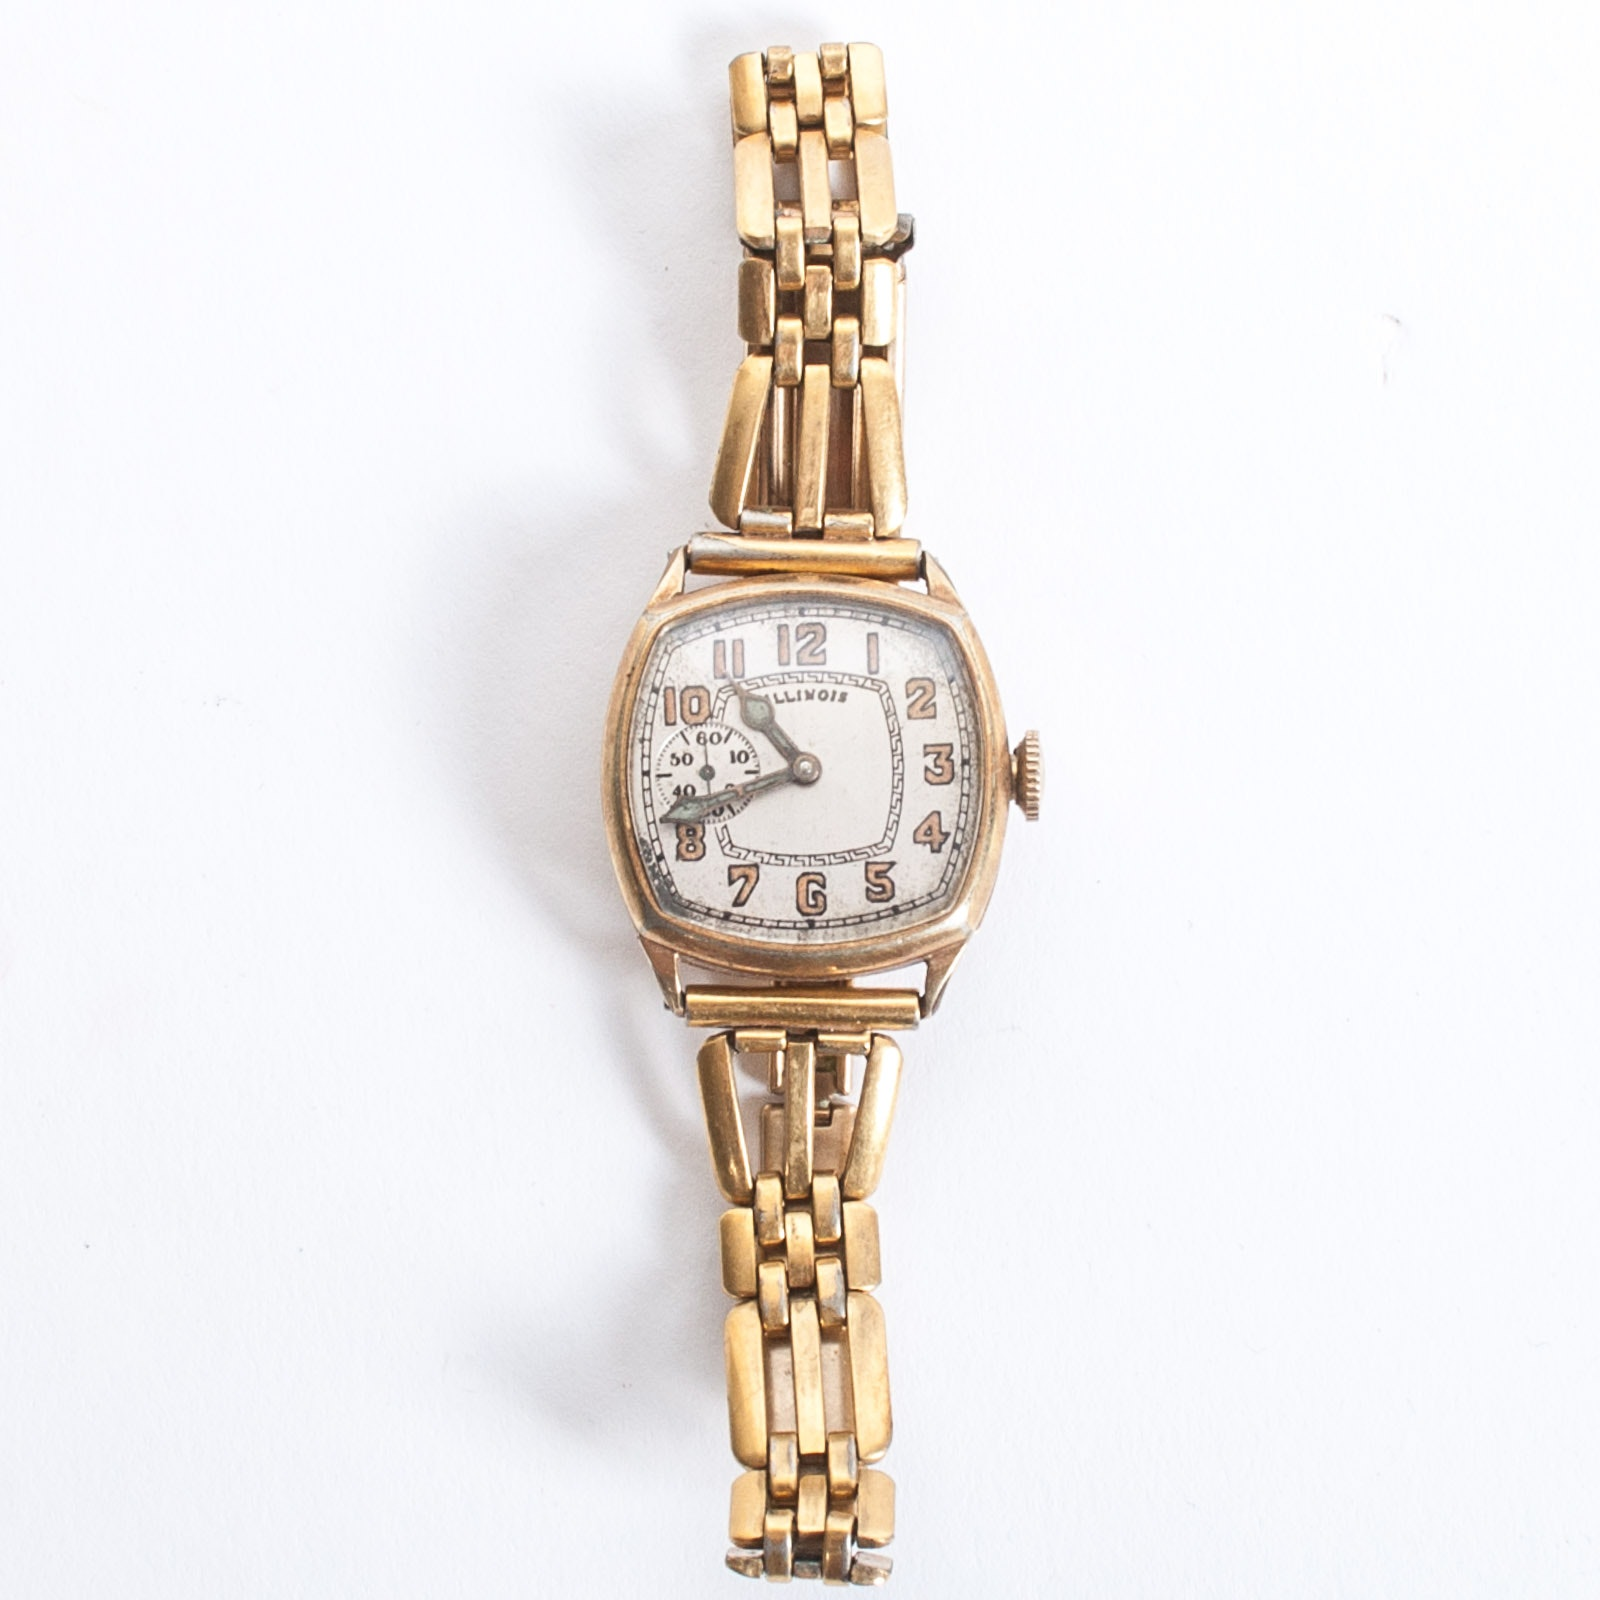 Illinois 14K Yellow Gold-Filled Circa 1926 Wristwatch